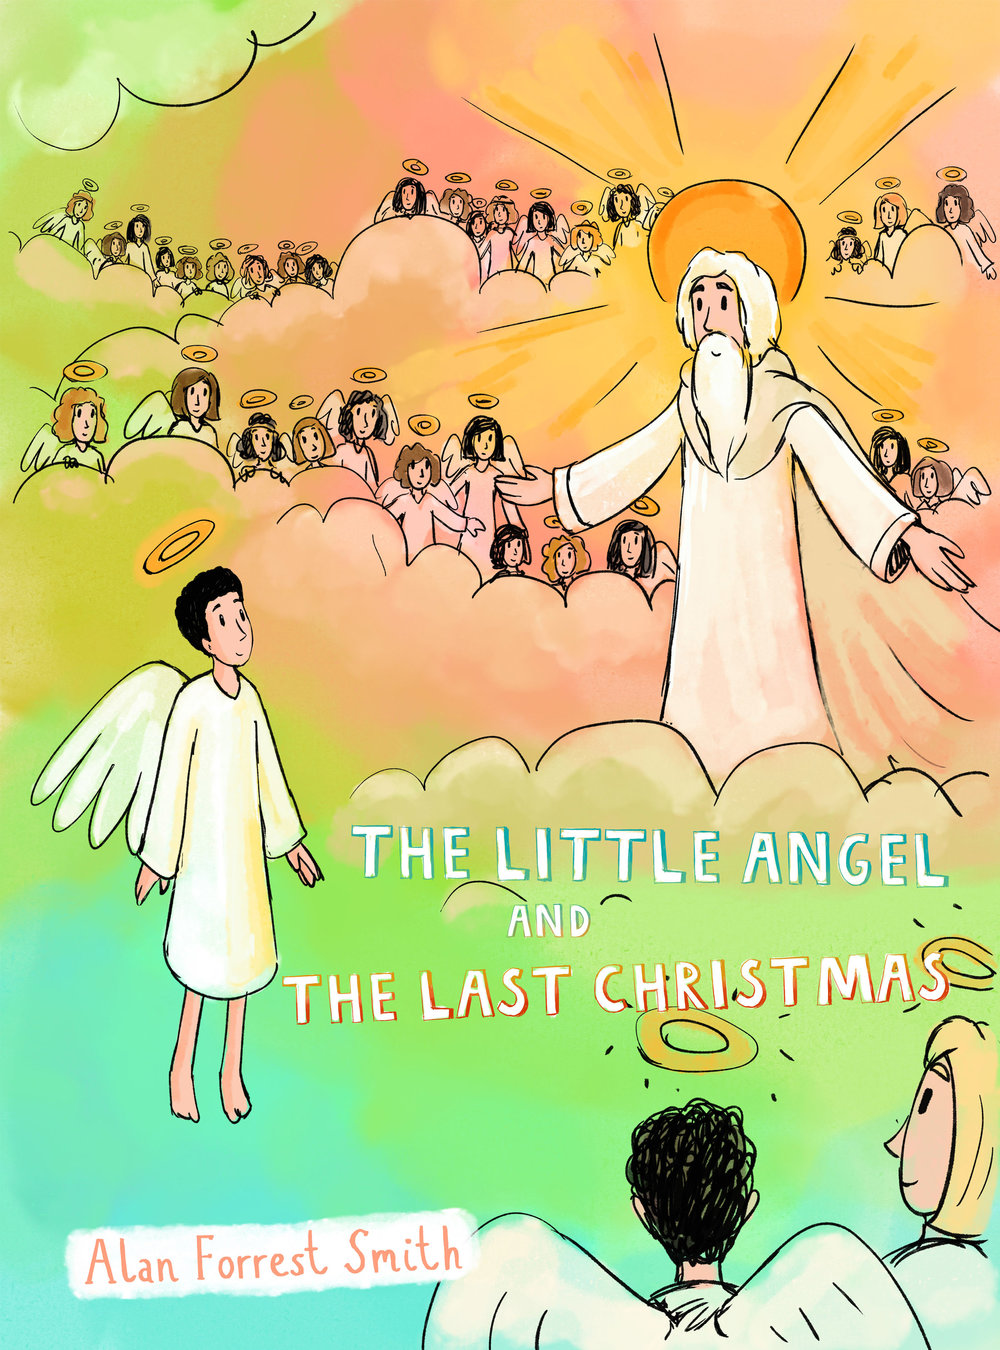 NEW BOOK RELEASE - Alan Forrest Smith's latest book is a book inspired by classic Christmas stories.Imagine you, your kids, your partner or friends sitting around a warm farm over christmas and riding this book together.Thomas the little angel has one mission only - to save Christmas. Could this be the last Christmas ever?Time is short the risk is hugeIt could end at midnightFive chances to find the true spirit ofChristmas or lose everything - including his wings.A truly magical Christmas read everyone will love.Just 50 pages.Paperback and eBookFully illustrated.Released December 2017ORDER HERE